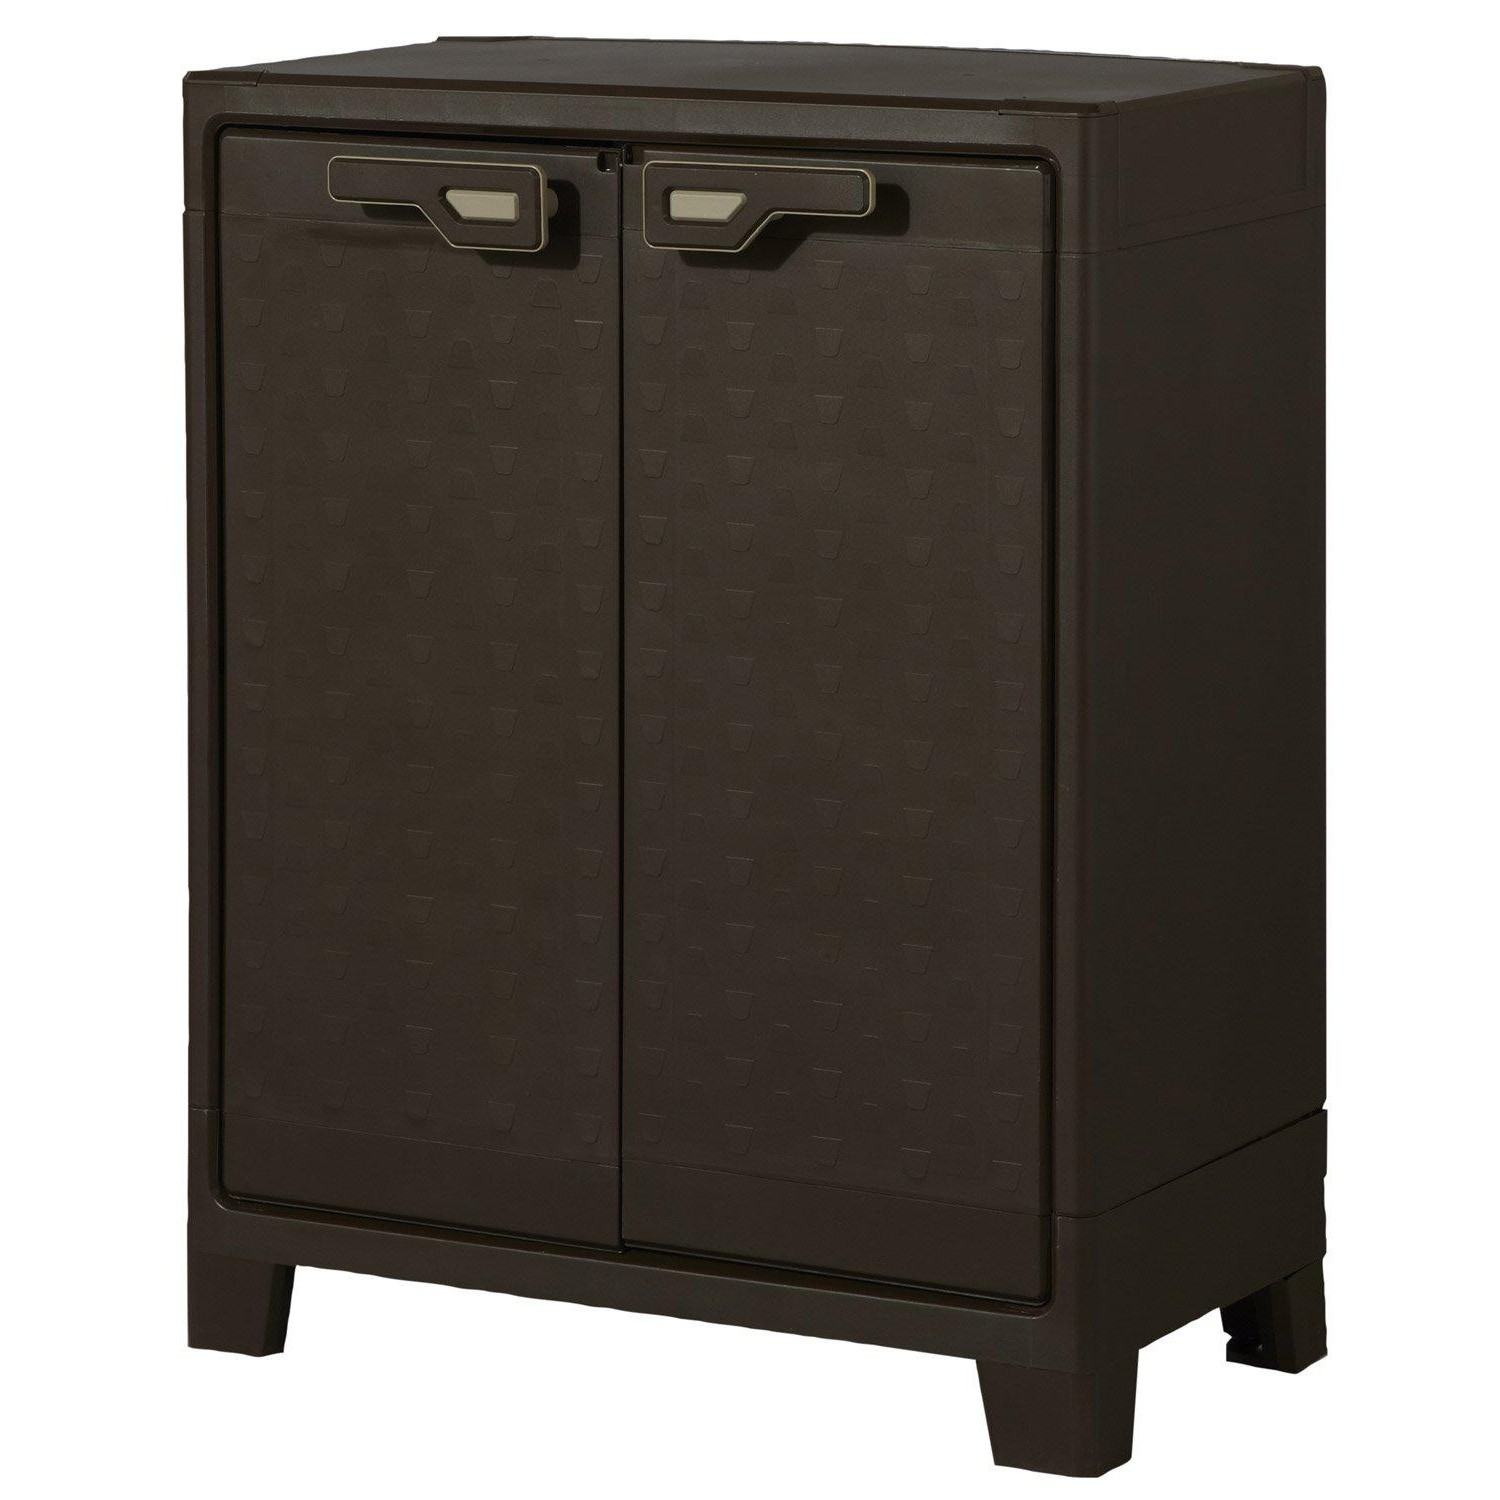 armoire de jardin en plastique leroy merlin armoire id es de d coration de maison xgnv2k1n62. Black Bedroom Furniture Sets. Home Design Ideas